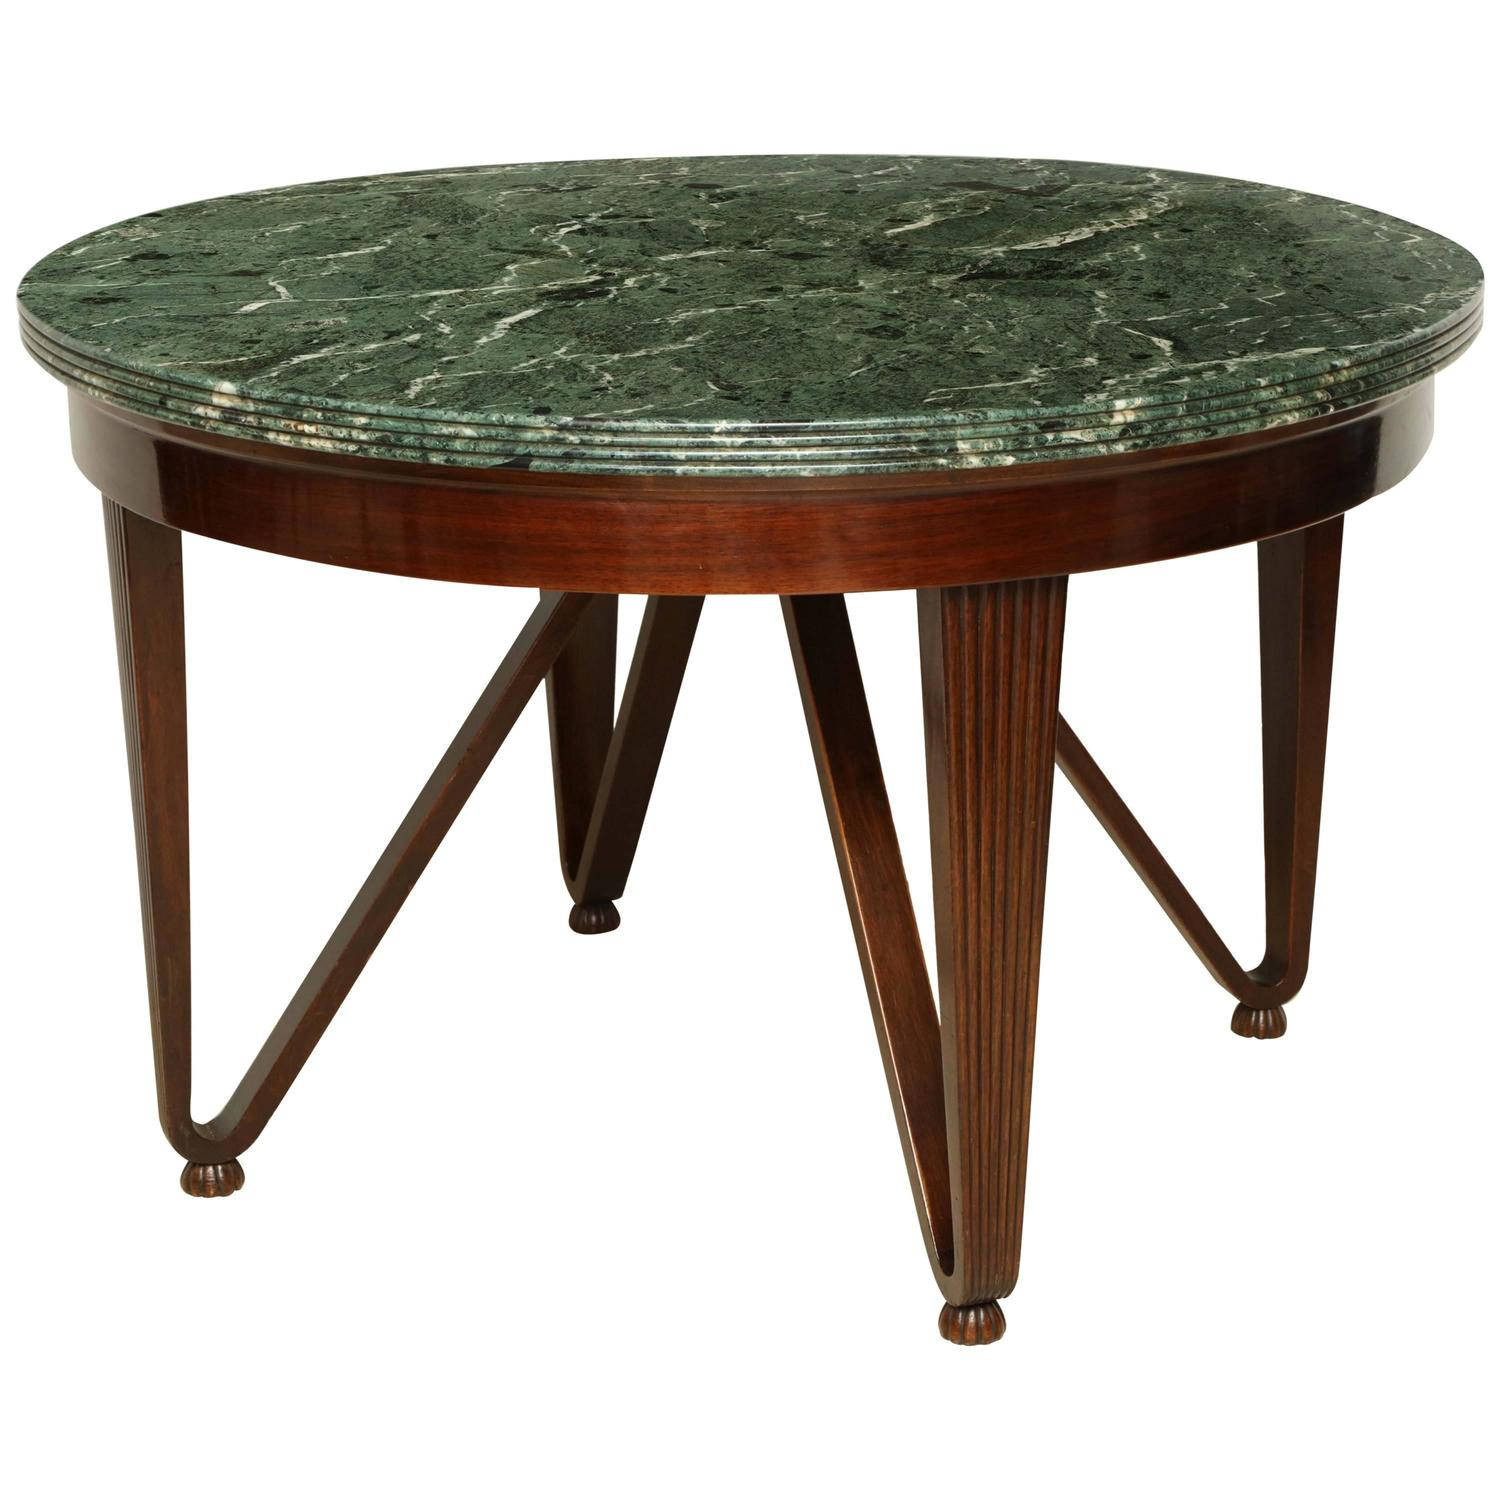 Round Wood Hairpin Coffee Table: Round, Italian Mahogany Center Table With Green Marble Top